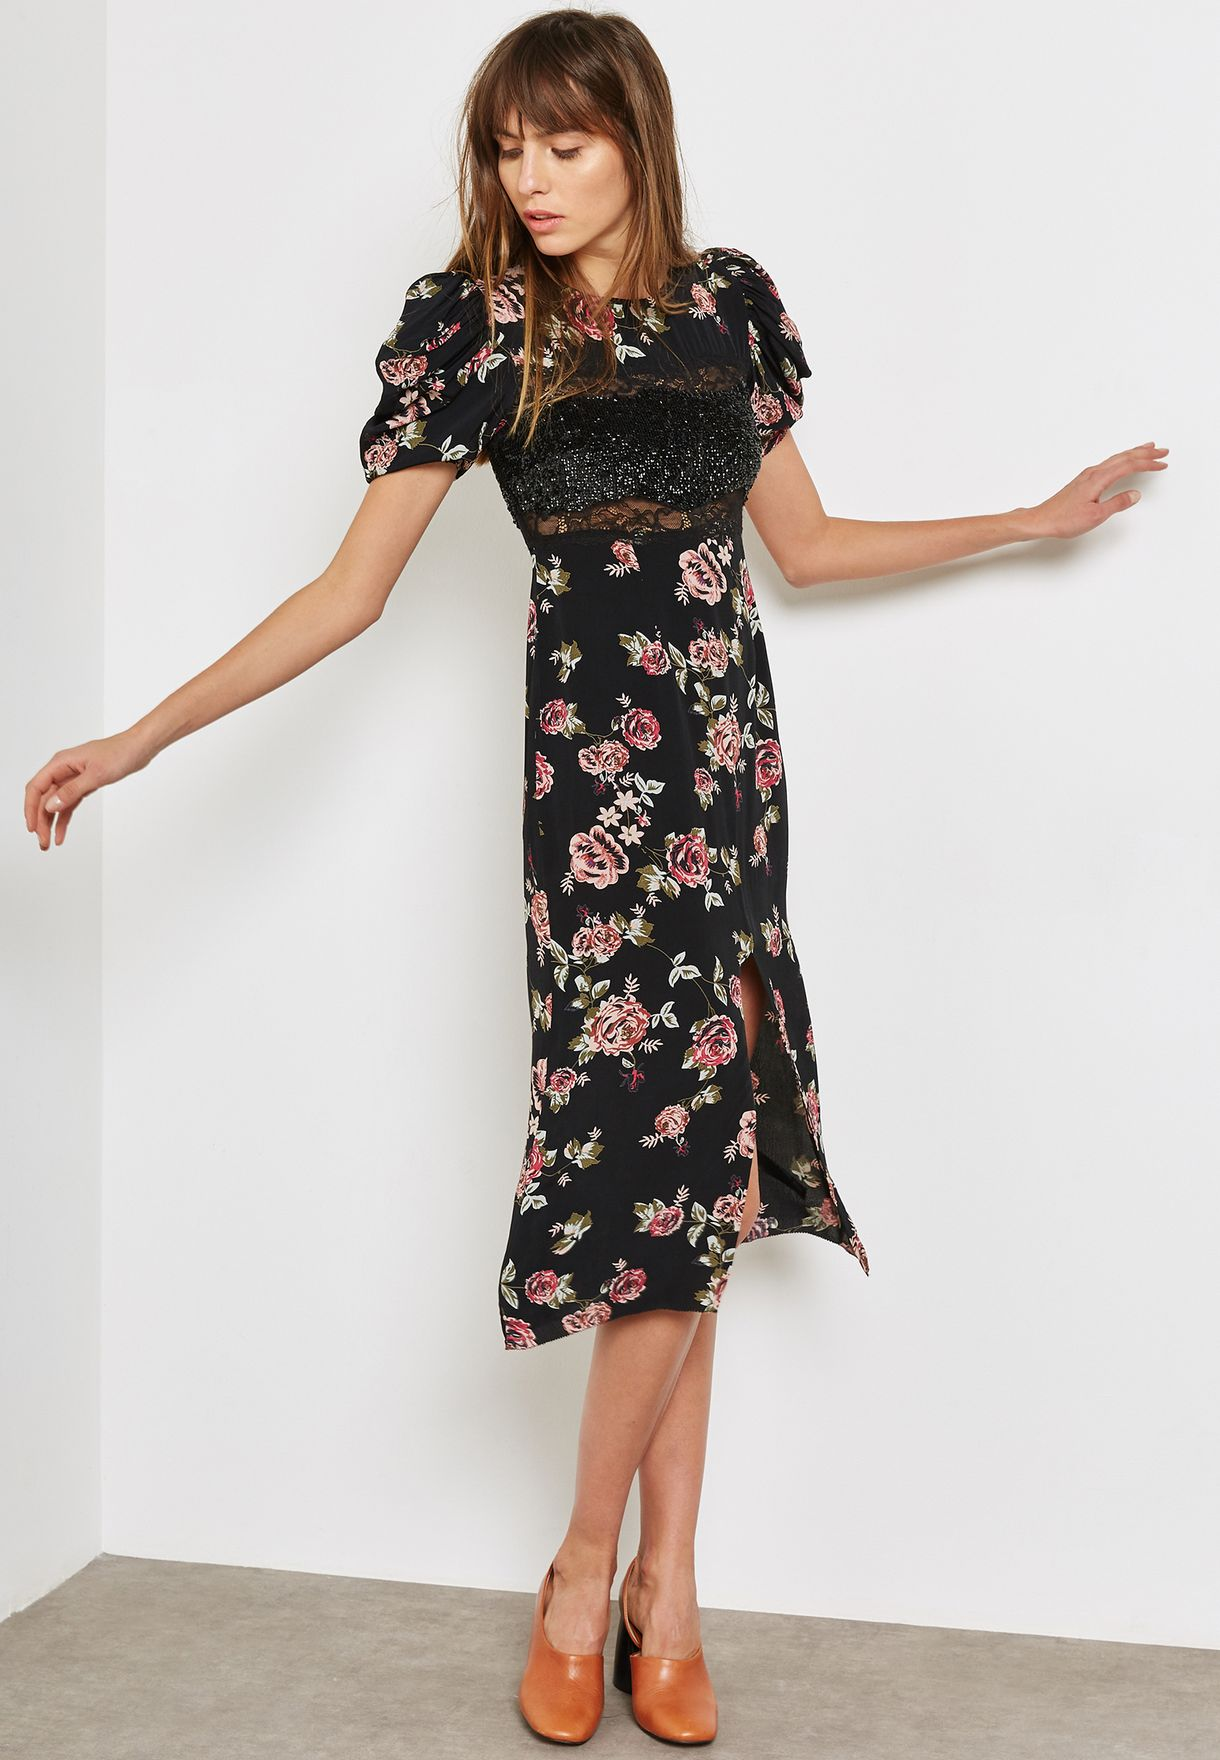 d72d002bf97bf Shop Topshop black Sequin Floral Midi Dress 10G05MMUL for Women in ...